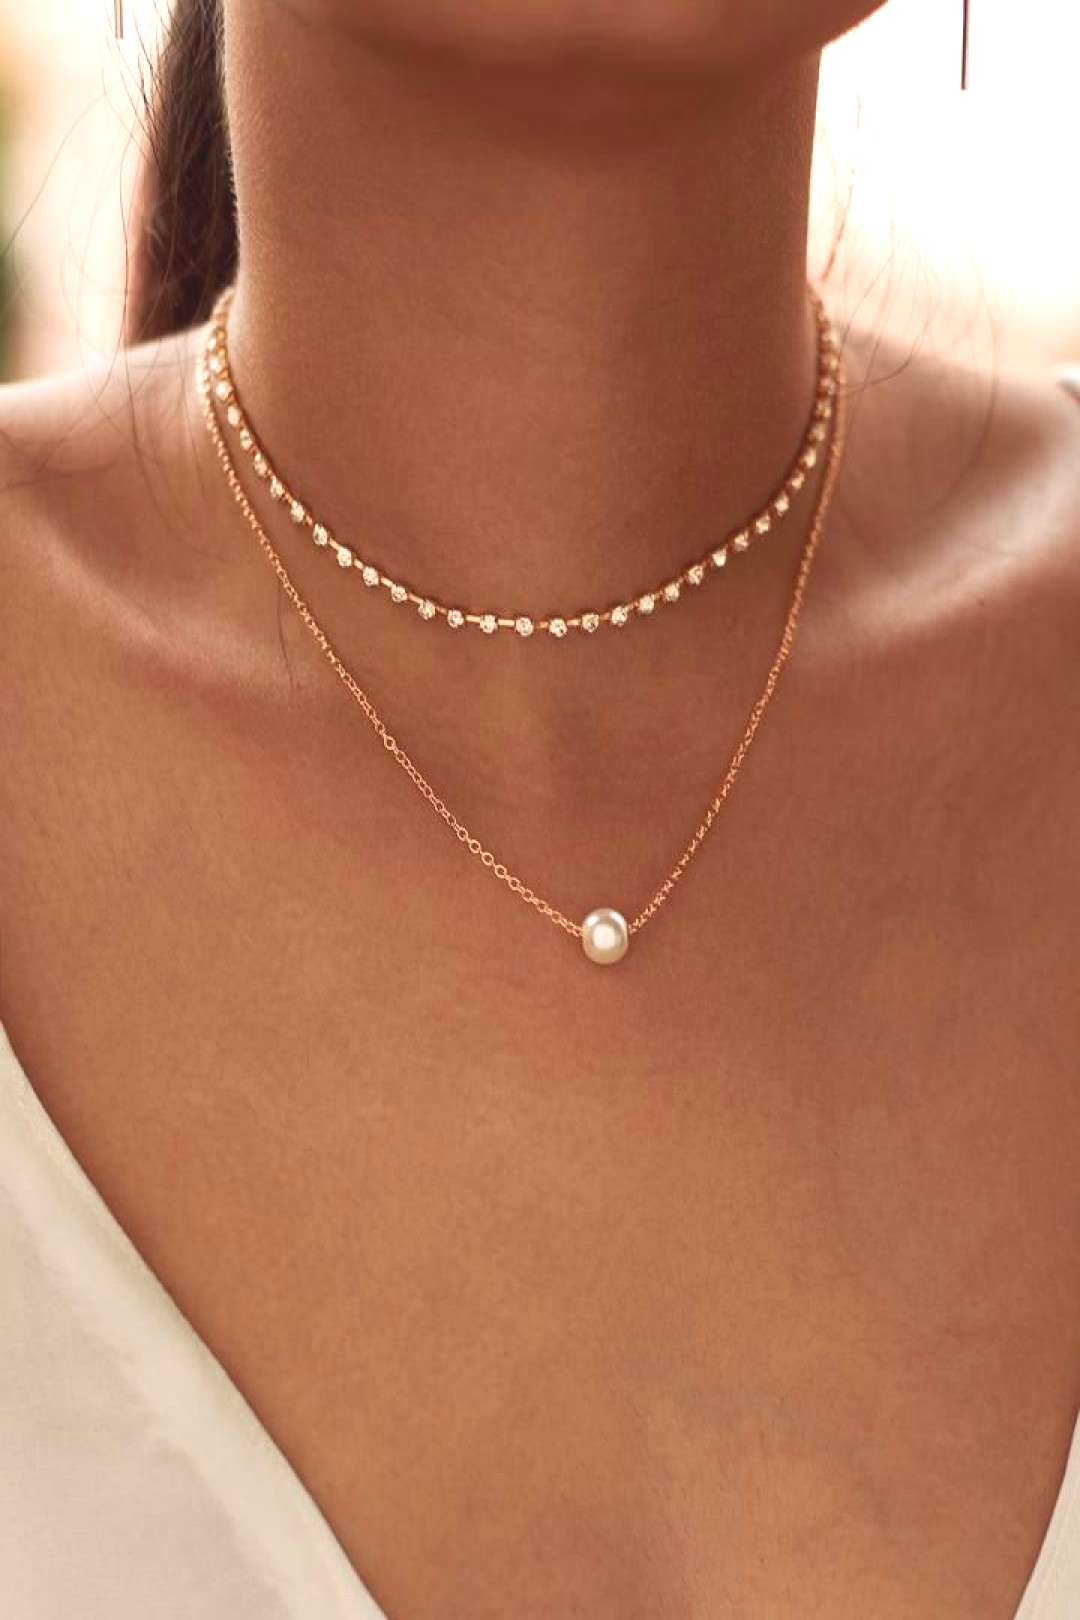 Faux Pearl Pendant Necklace and Rhinestone Choker    2pc